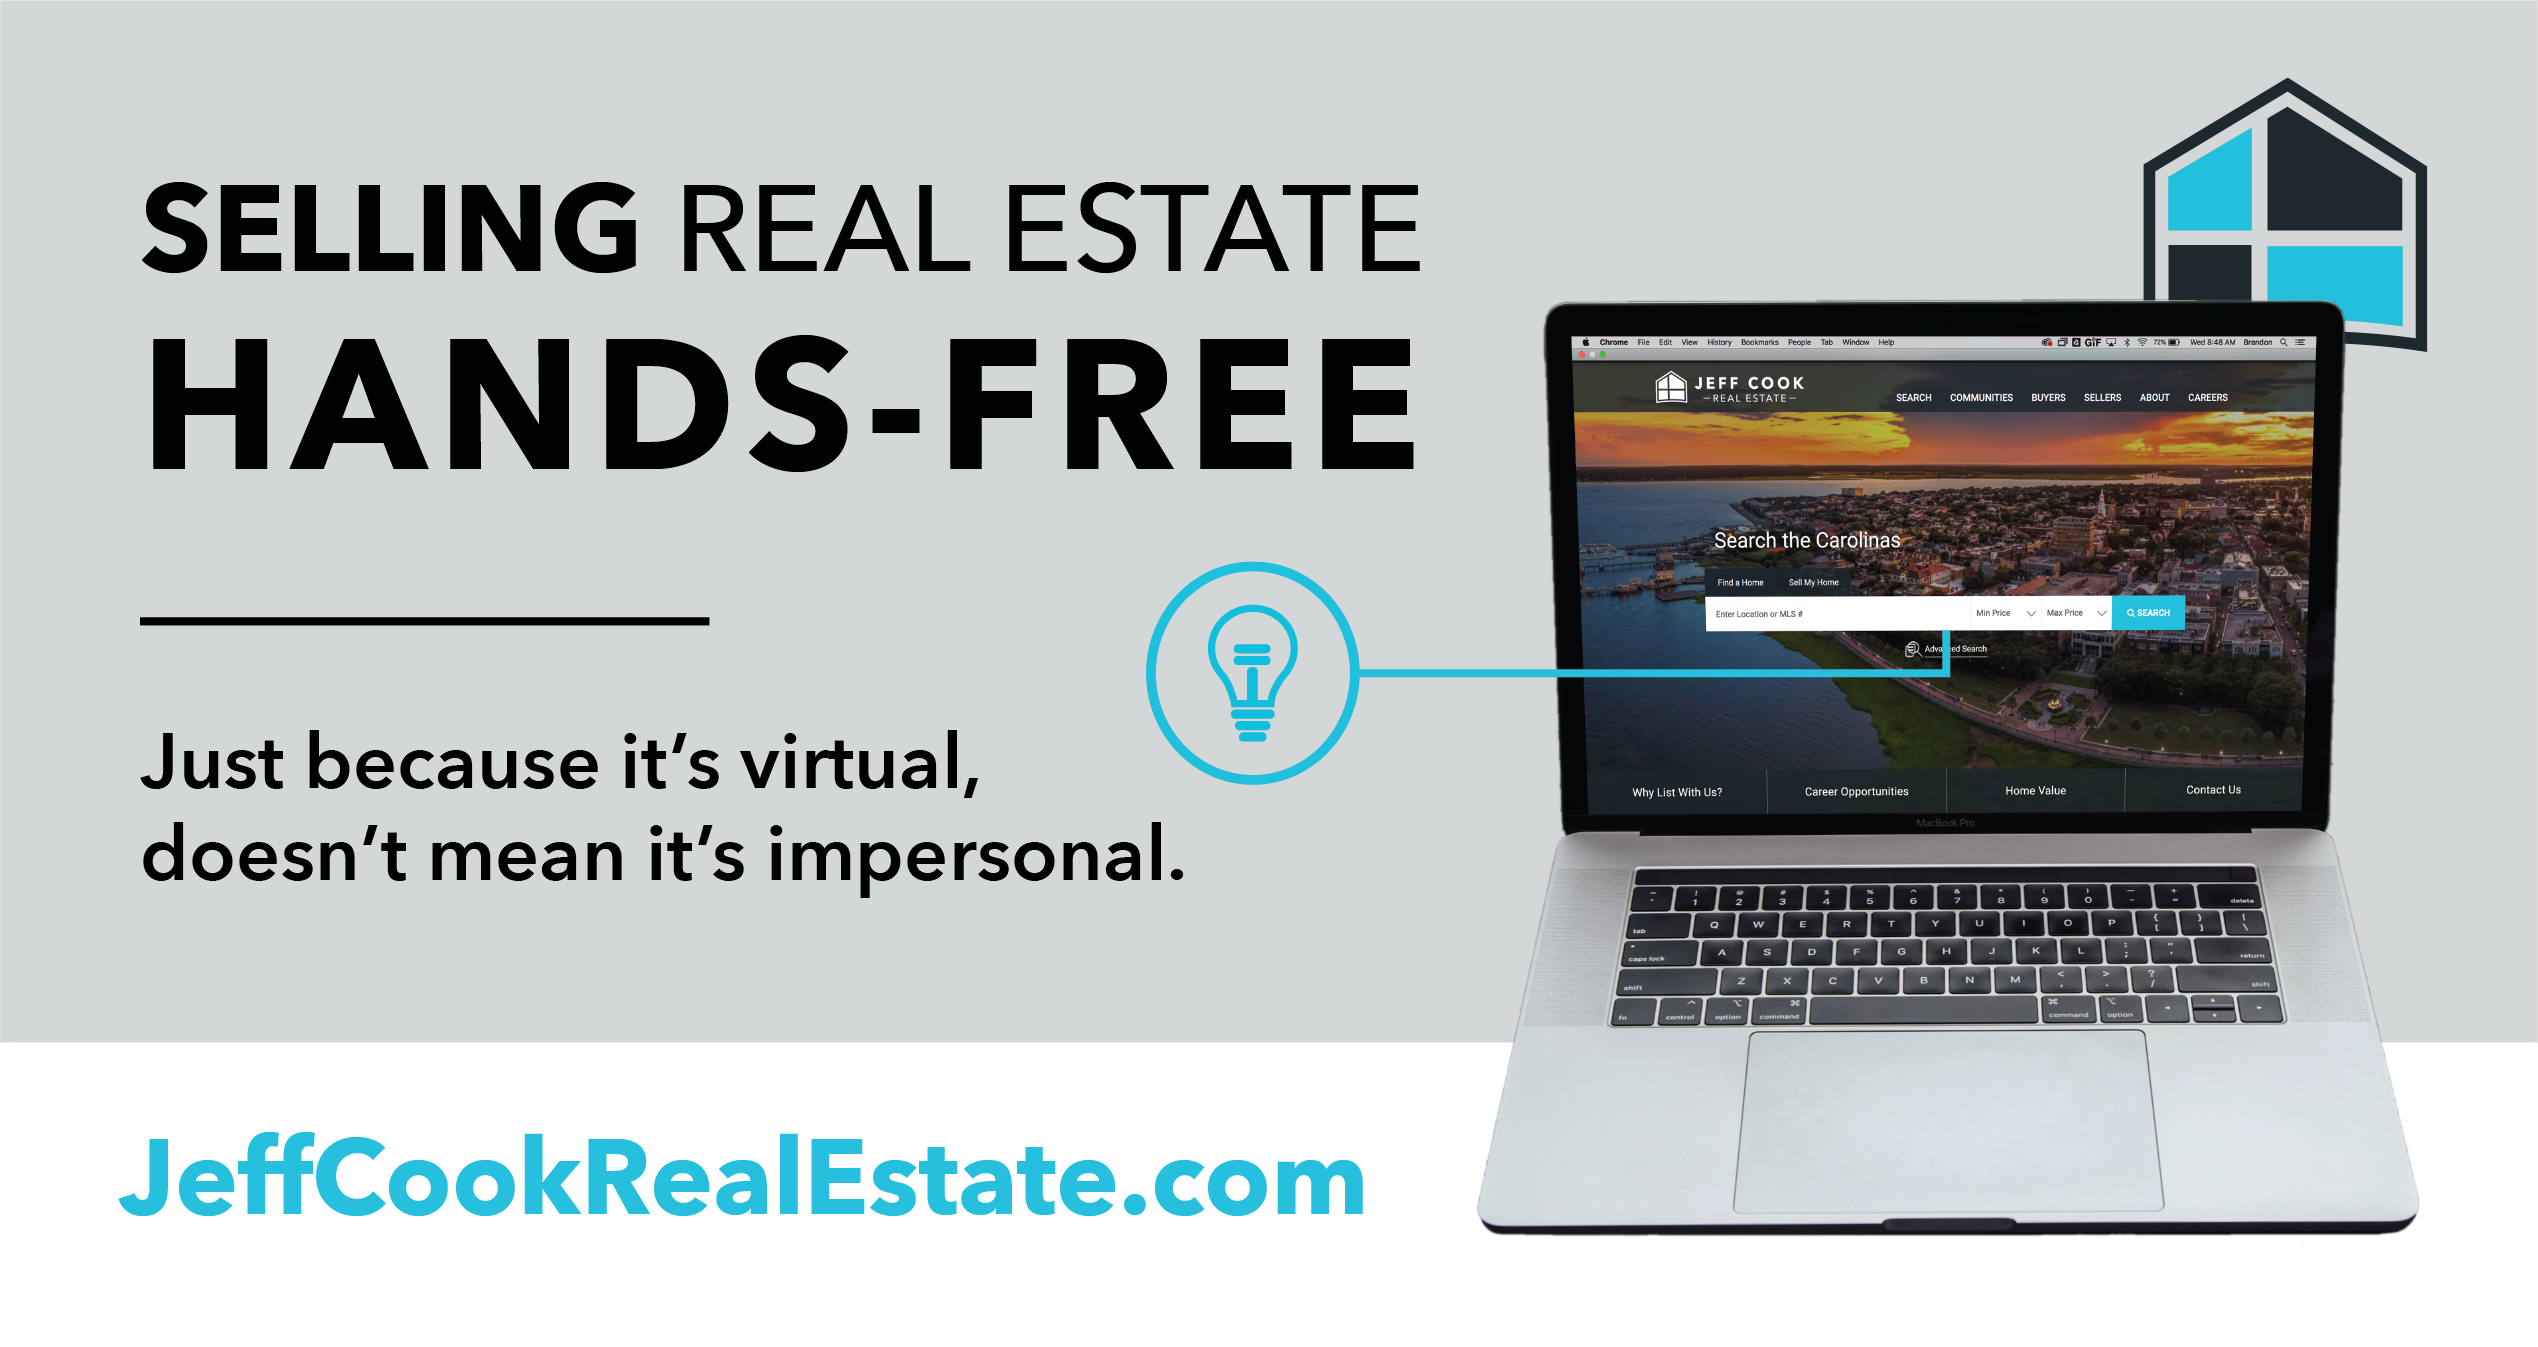 Selling Real Estate Hands-Free